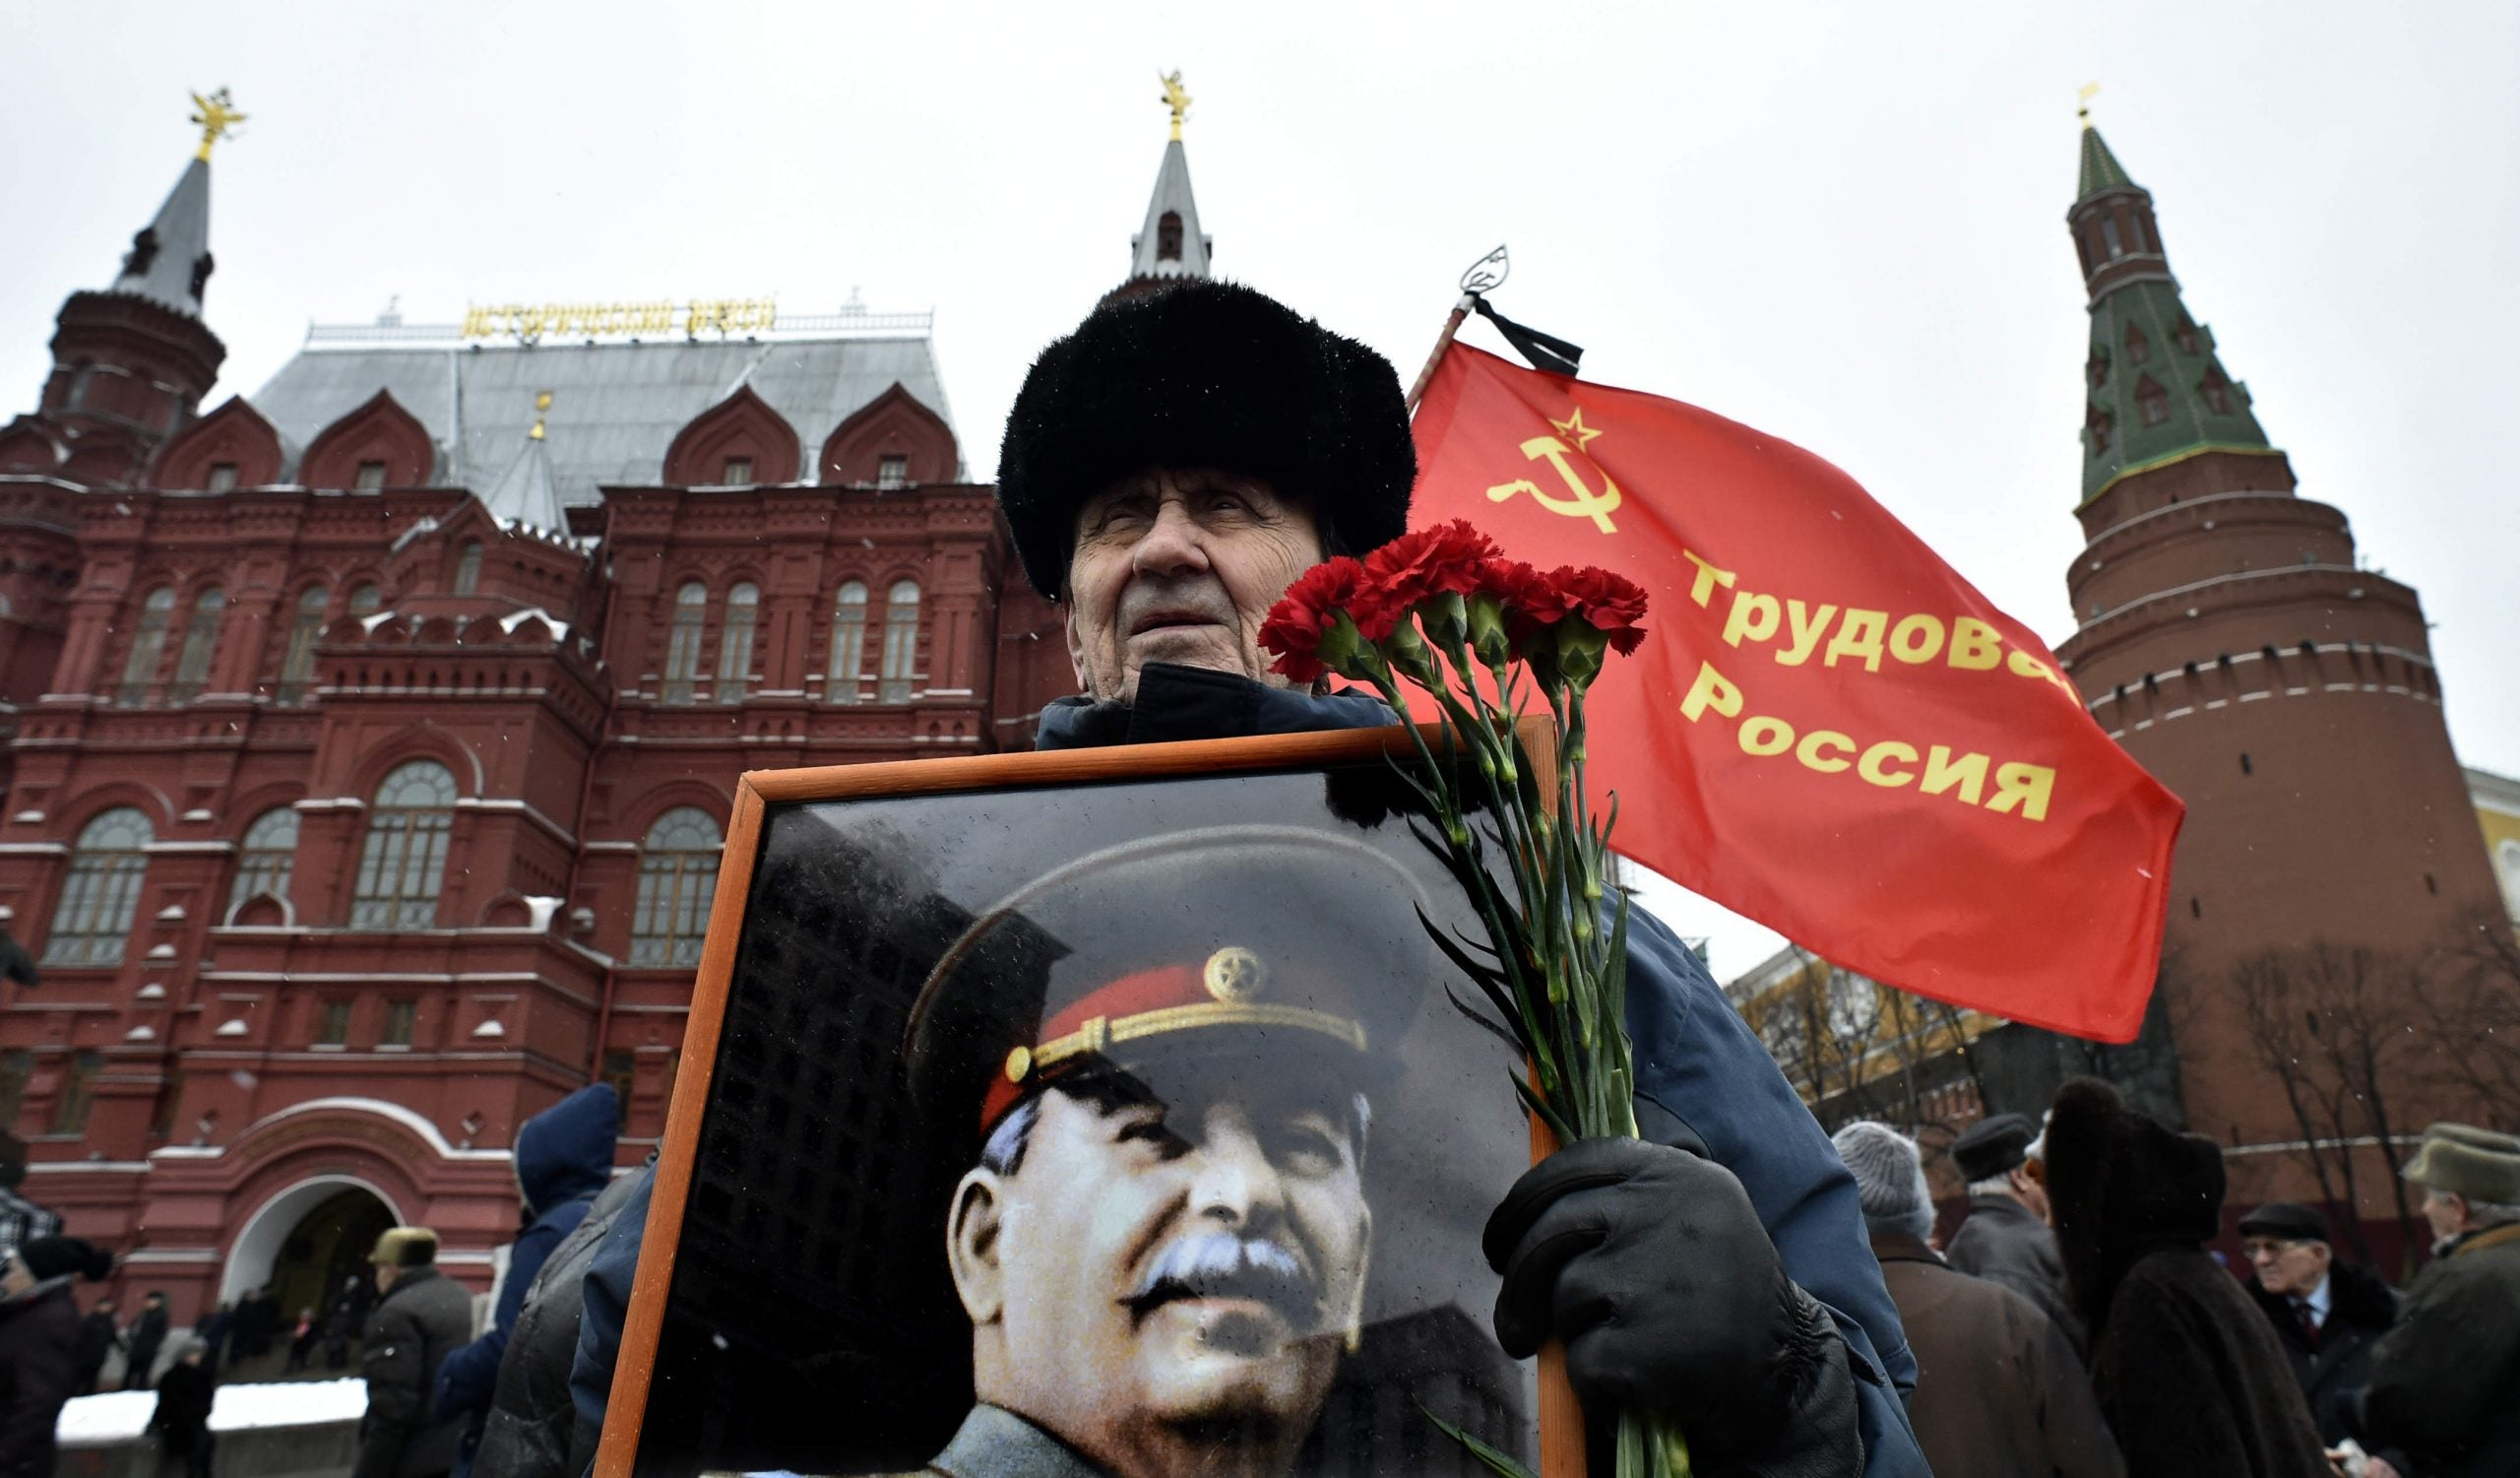 Russia's reaction to The Death of Stalin shows its changing attitudes towards him